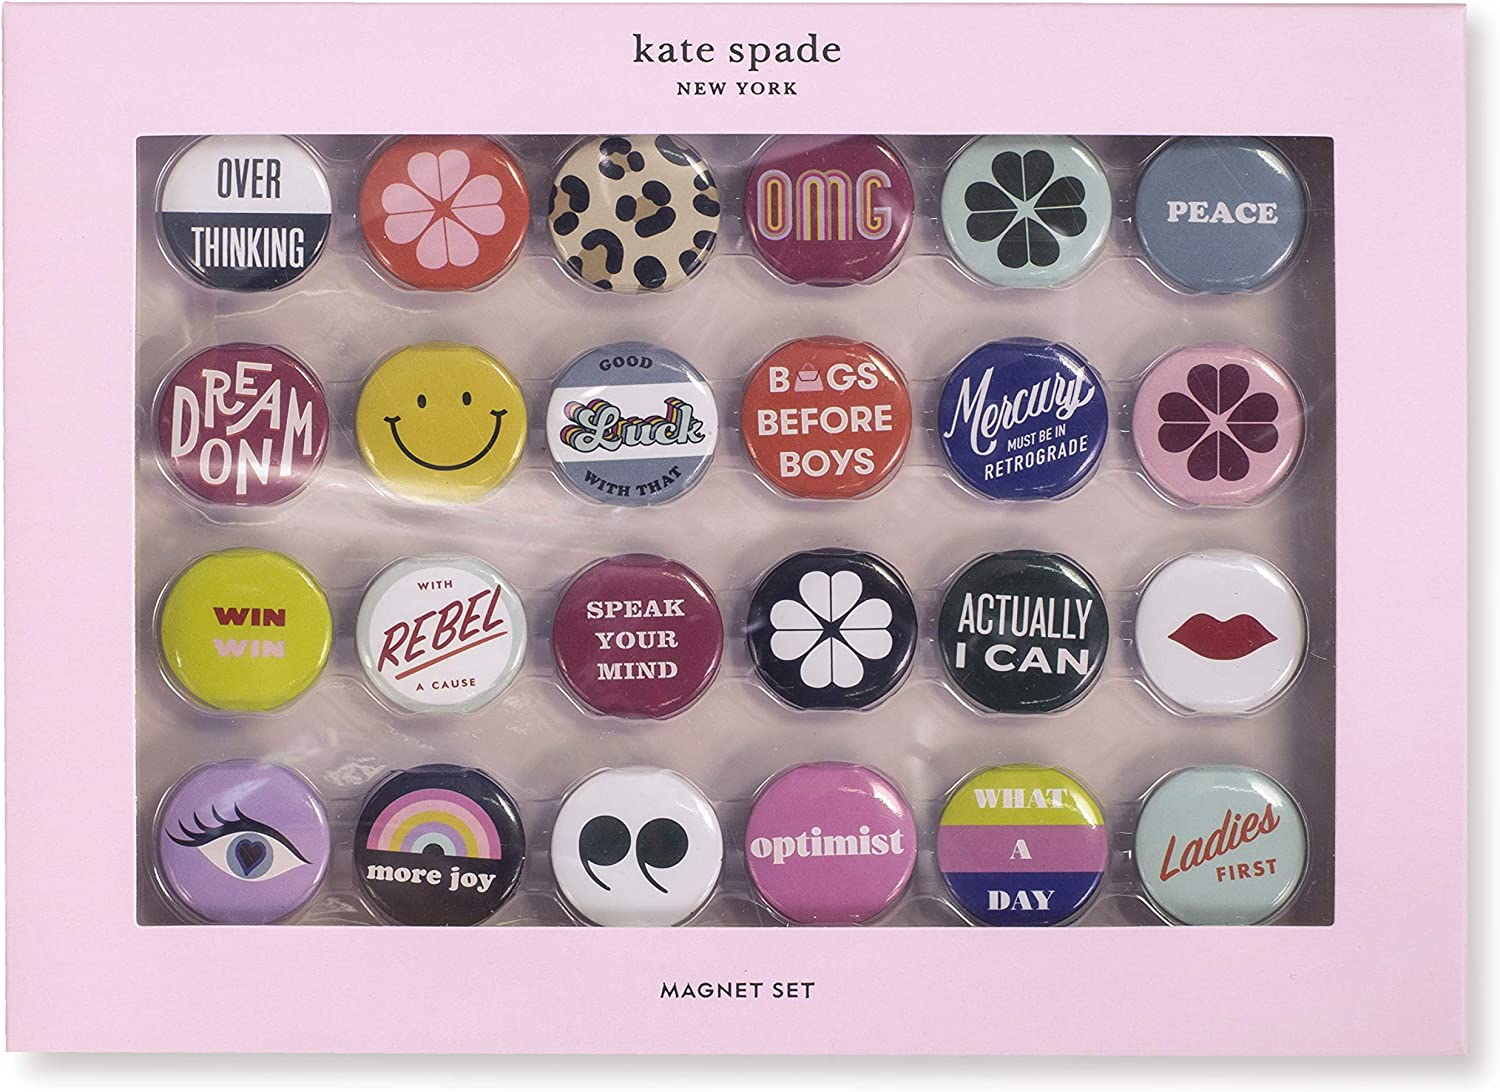 Kate Spade New York Colorful Magnet Set of 24, Cute Magnets for Office/Fridge, Actually I Can (assorted)